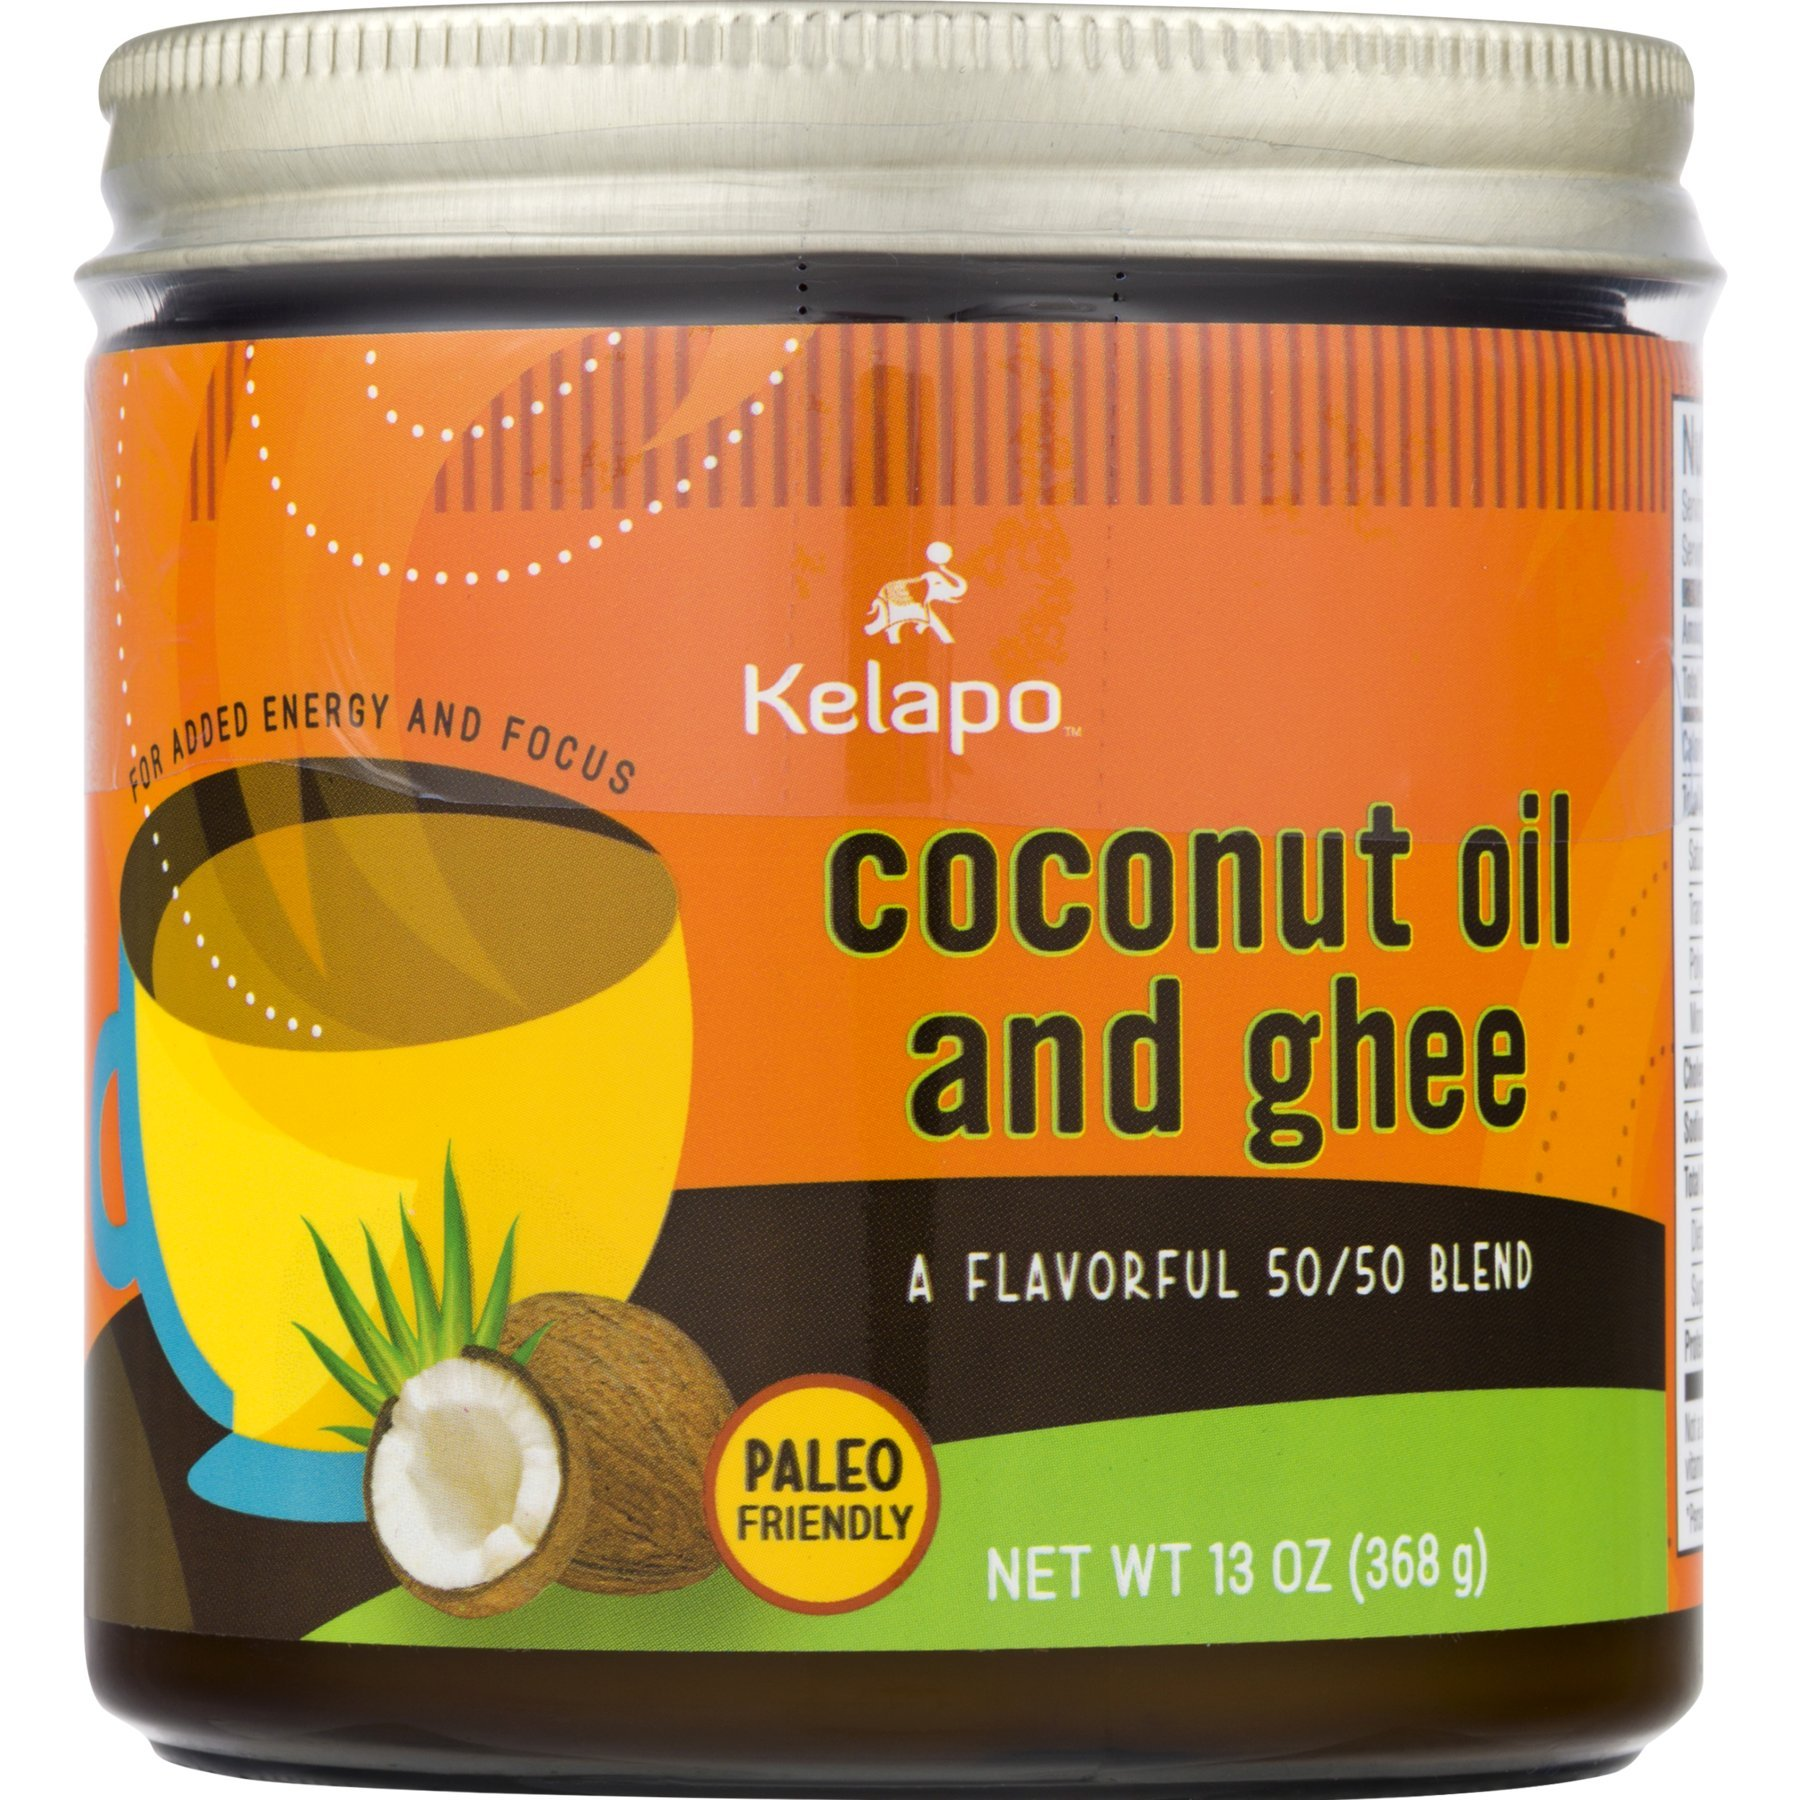 Kelapo Coconut Oil and Ghee 50/50 Blend,13-Ounce Jar